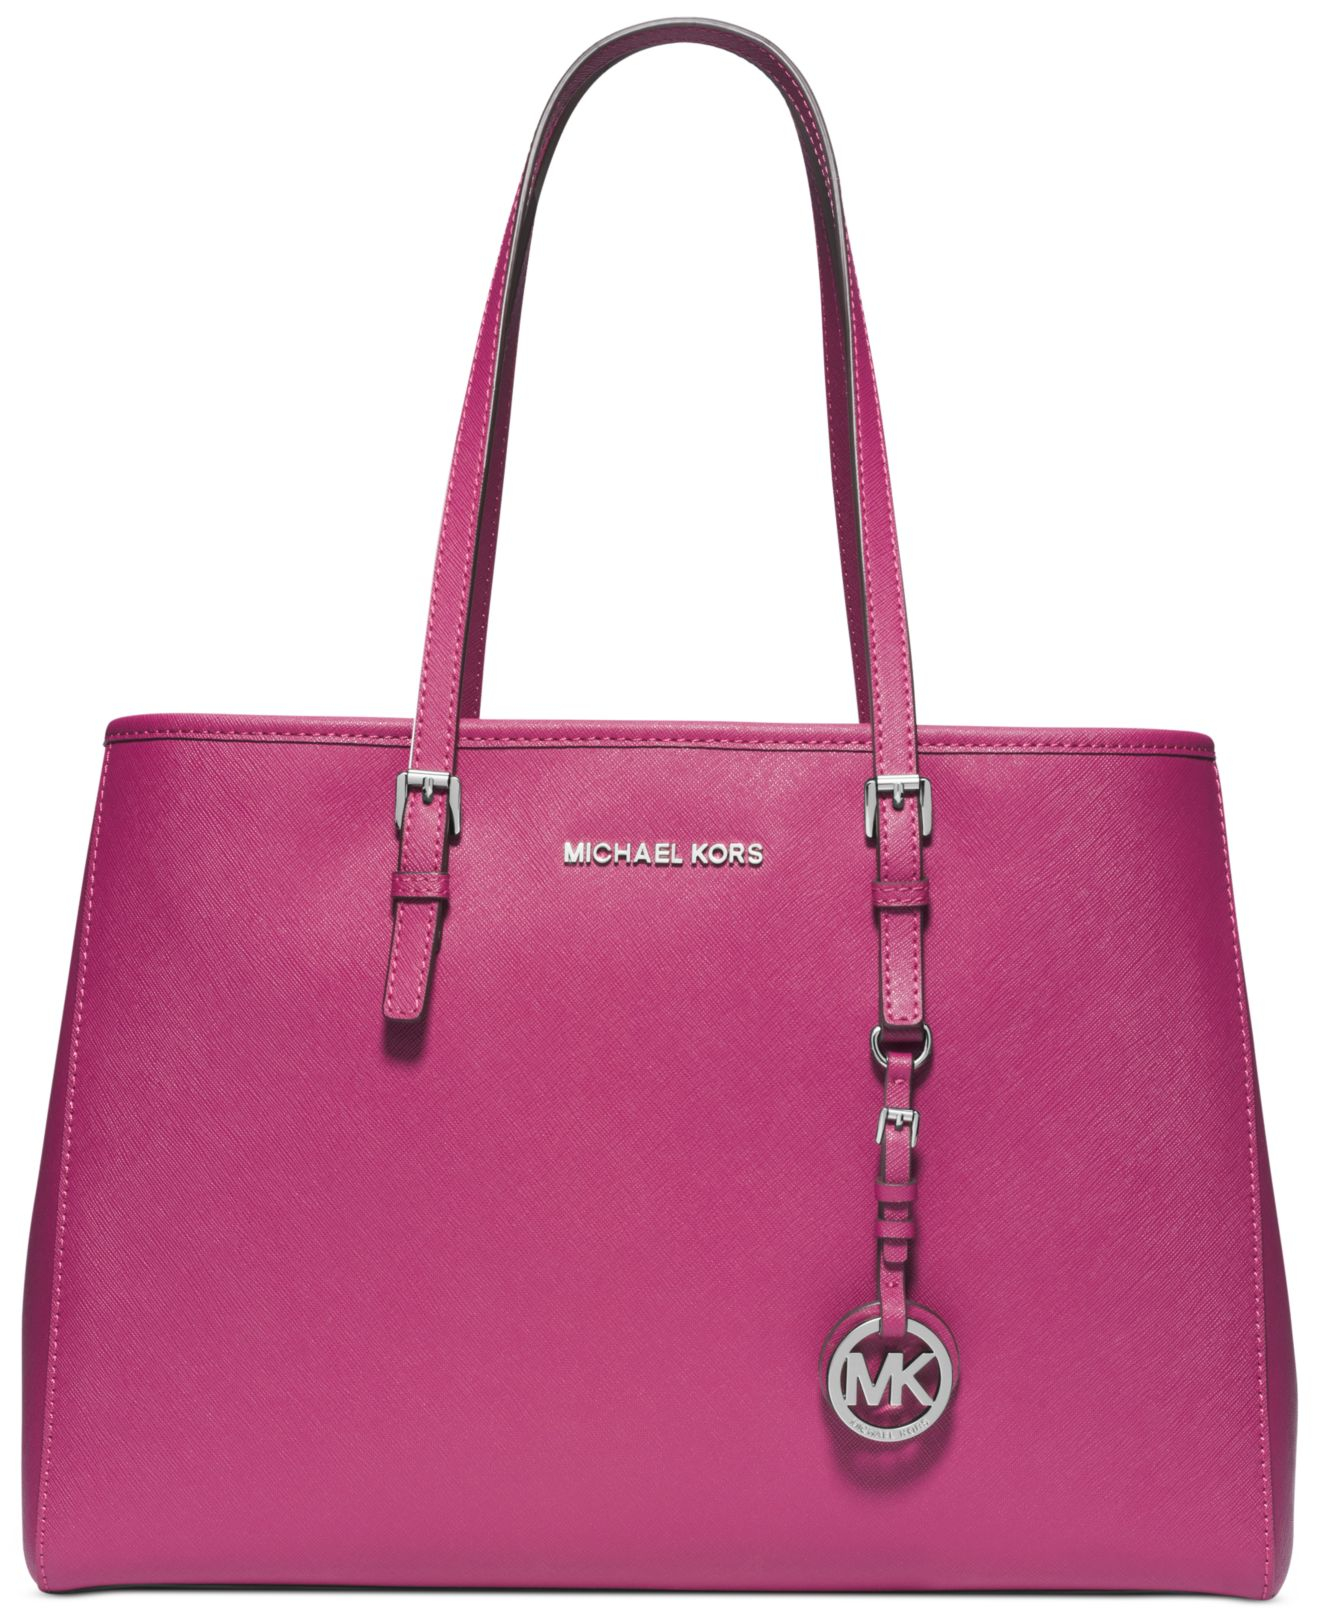 michael kors michael jet set travel east west tote in pink deep pink. Black Bedroom Furniture Sets. Home Design Ideas